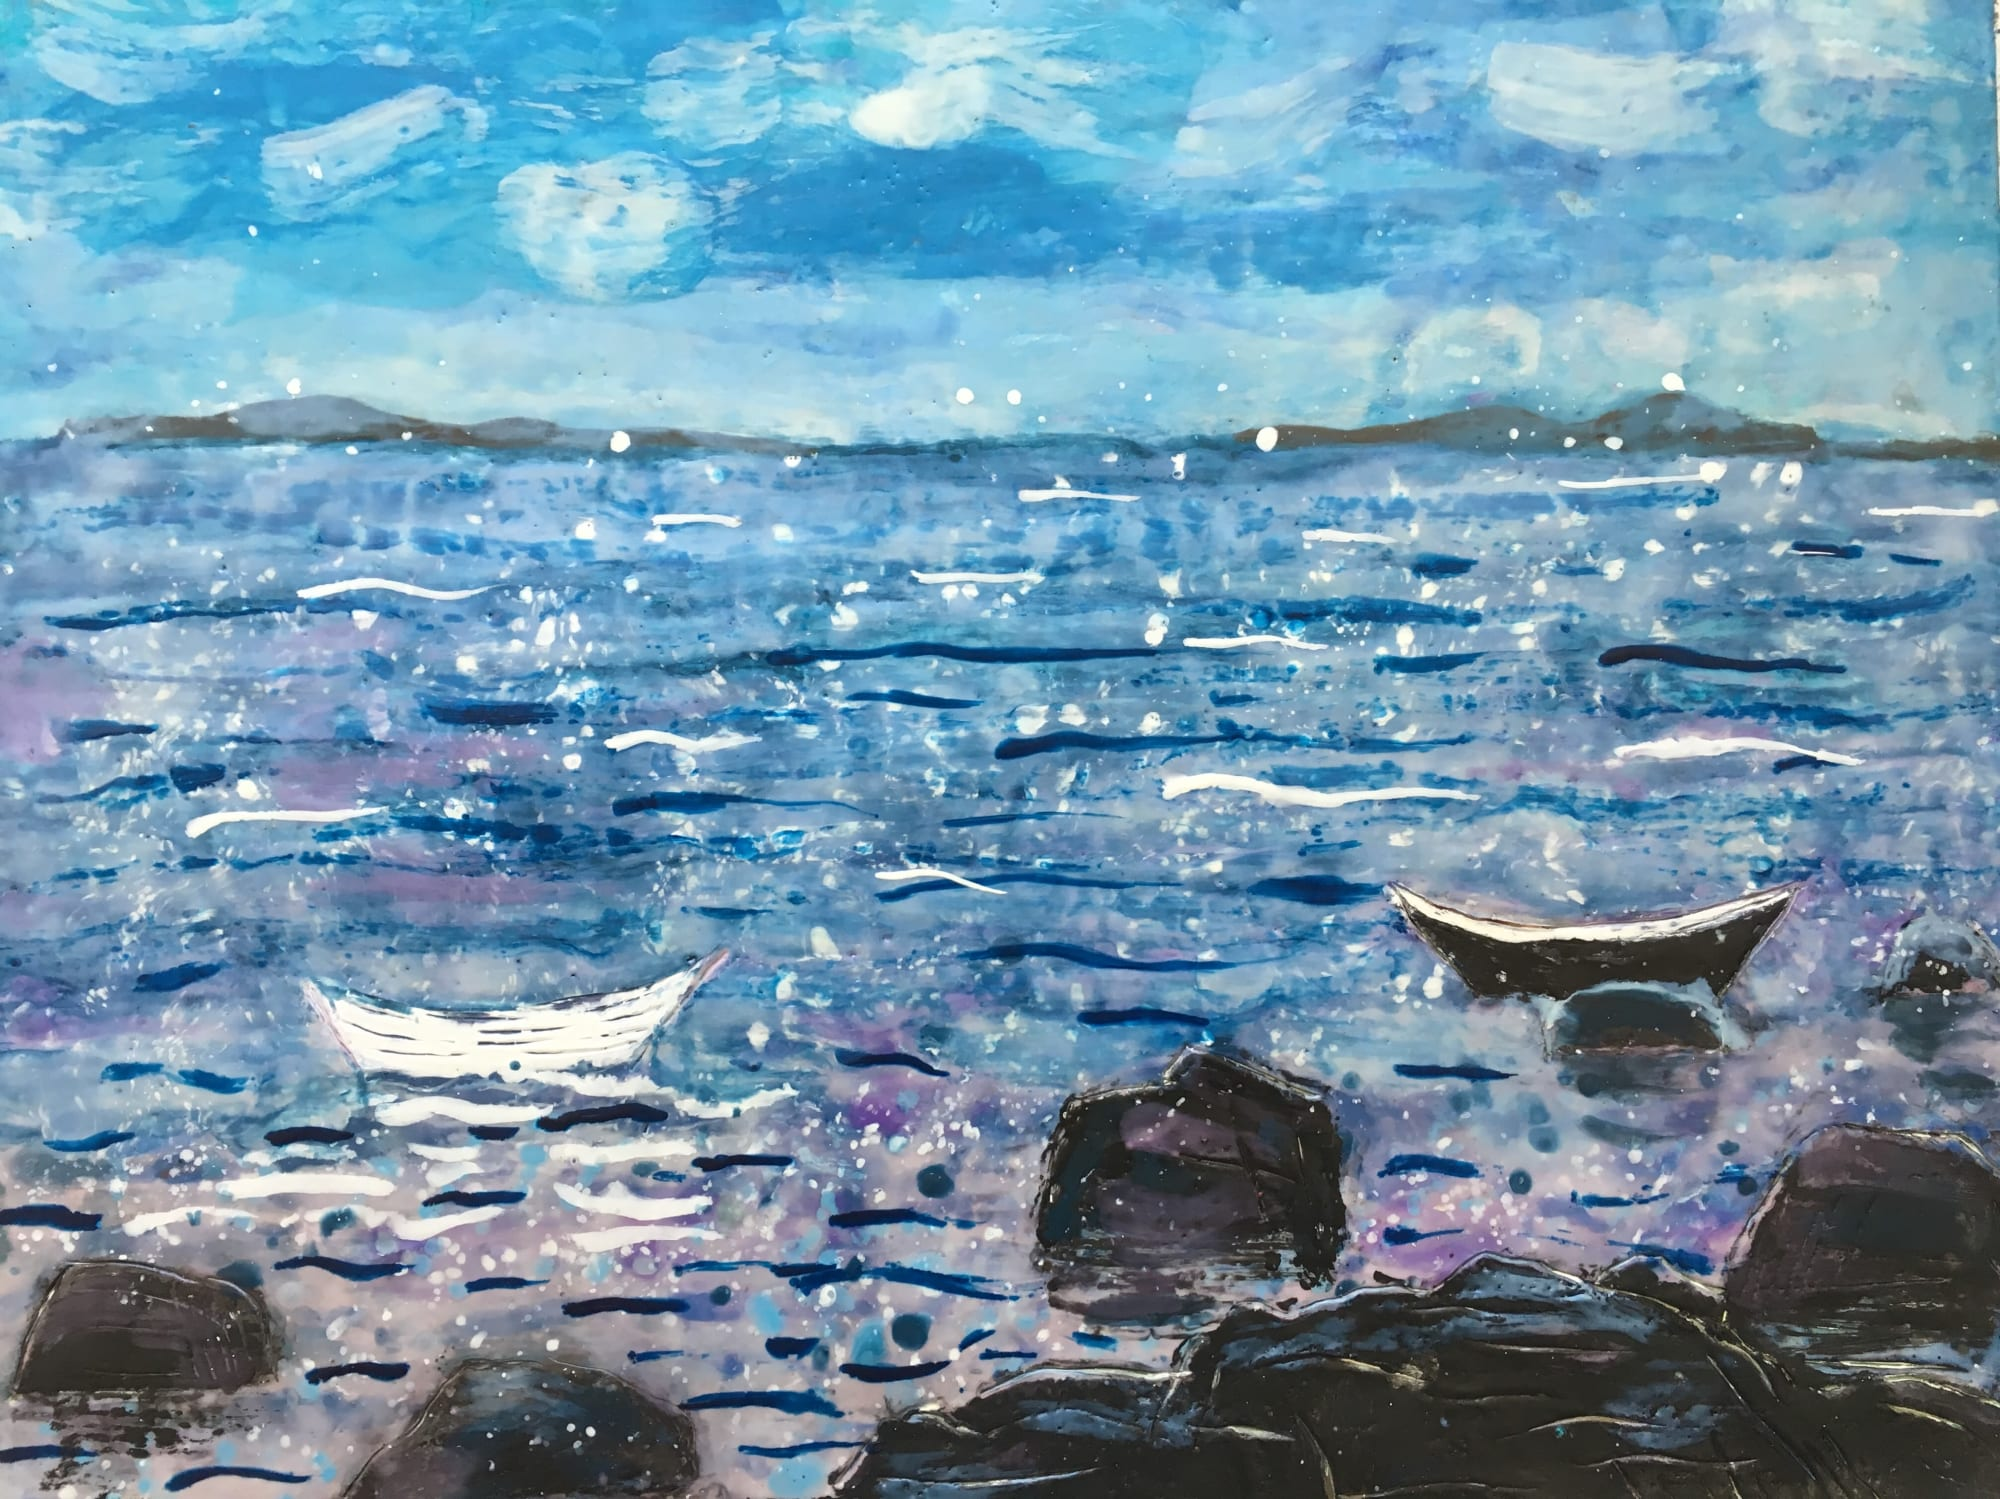 Paintings by willa vennema seen at Portland, Portland - Paintings from The House Series and The Boat Series